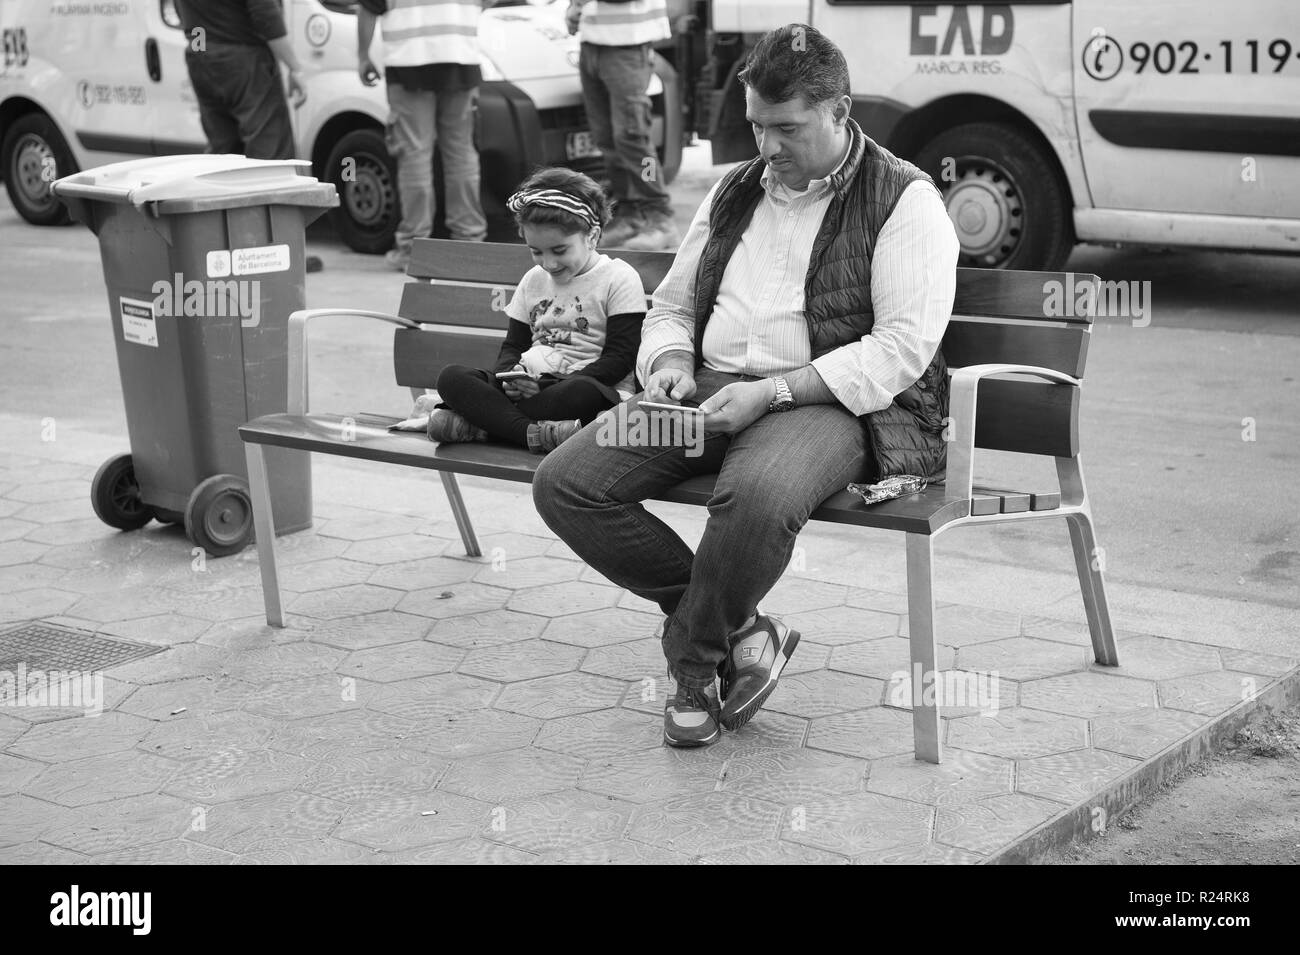 Barcelona, Spain - March 30, 2016: Father man and little girl search in smartphones sitting on bench on city street. Modern life. New technology. Summer vacation and wanderlust. - Stock Image